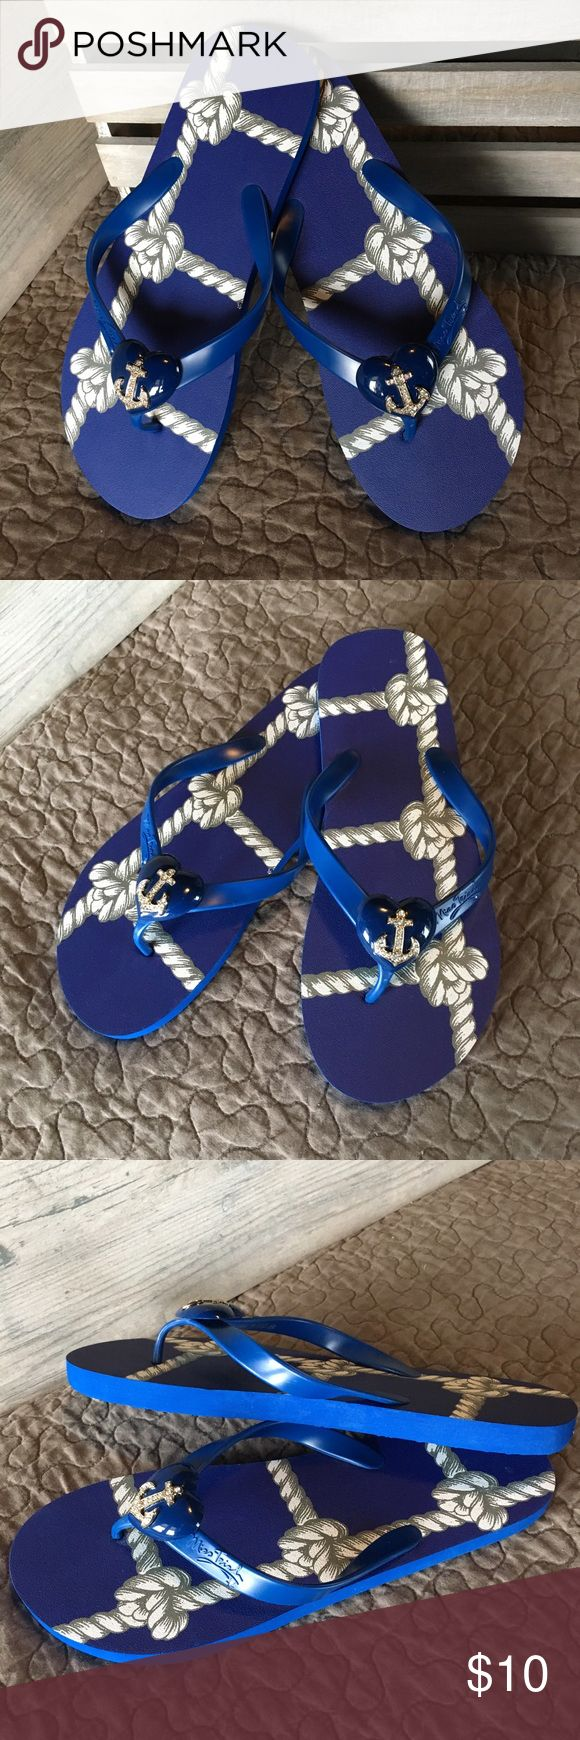 Nautical Sandals Skippers by Miss Trish is a summer flat flip flop featuring anchor embellishment with jewel detail. Never worn. Miss Trish Shoes Sandals